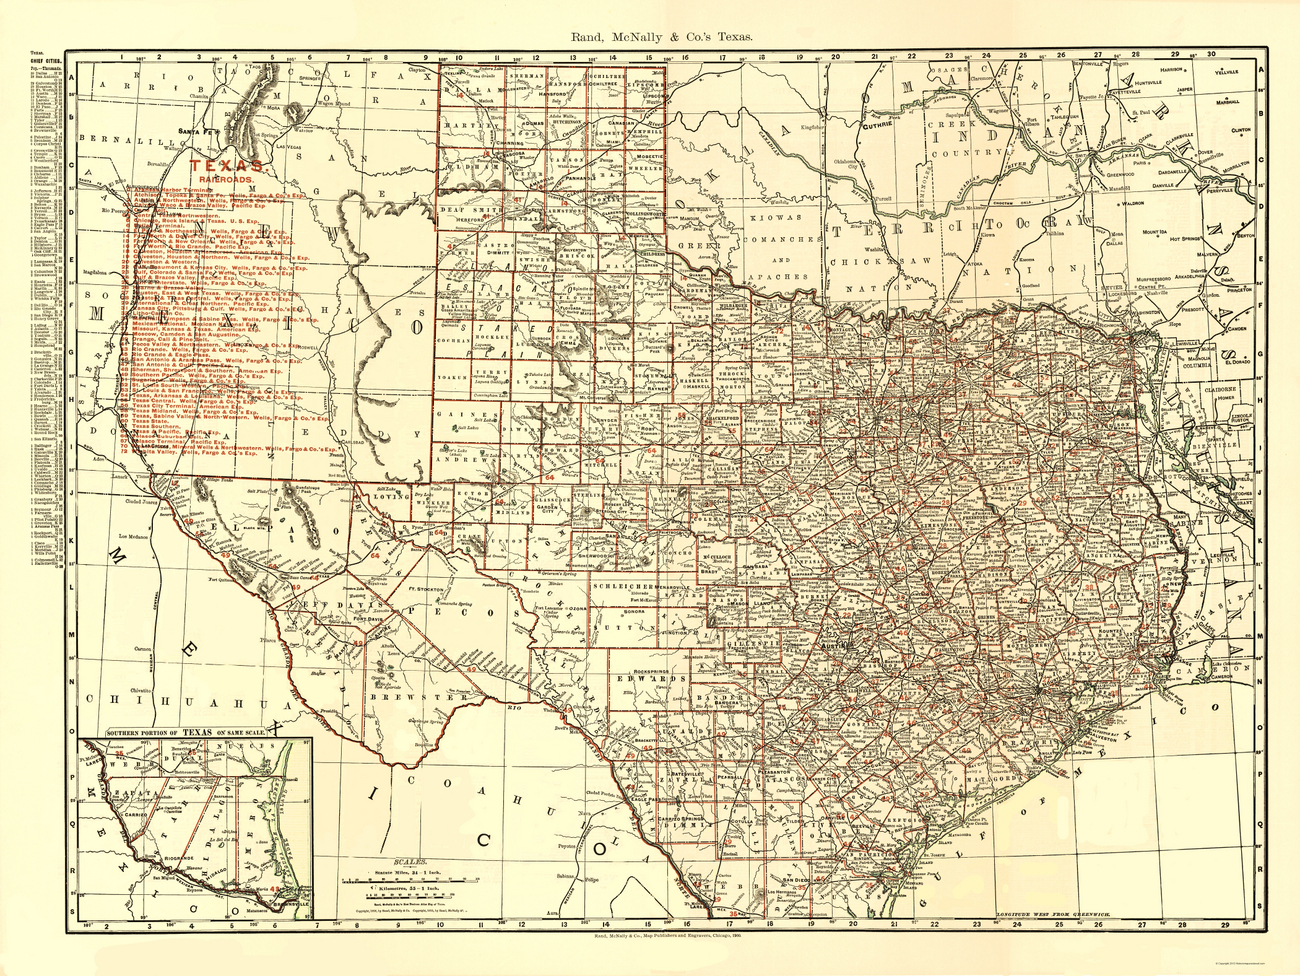 map of bastrop county texas with Texas Railroad Tx Rand Mcnally Map 1900 on Region 6 as well All additionally Alligator further Lower 20Colorado 20River 20Authority also All C grounds.